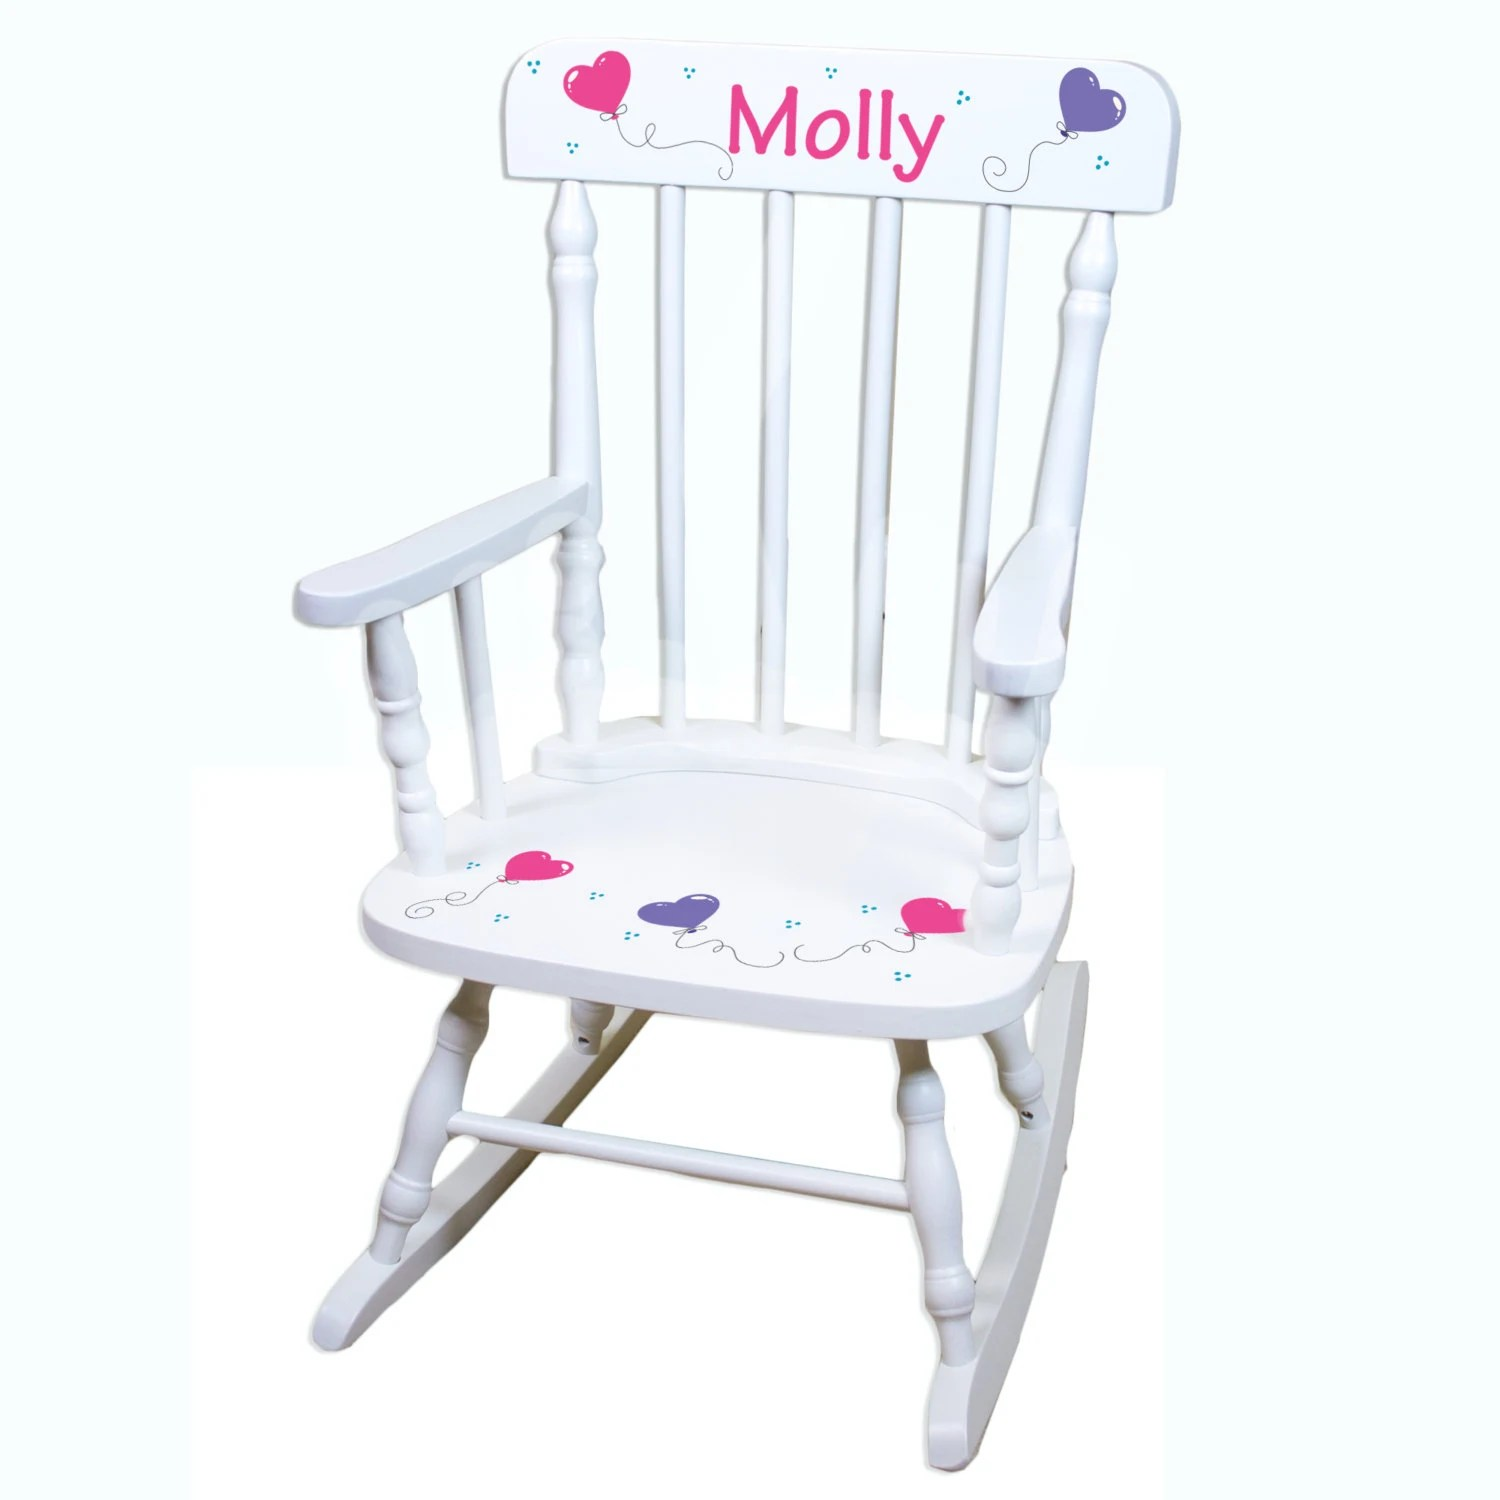 Toddler Rocker Chair Hand Painted Personalized Girls White Spindle Rocking Chair